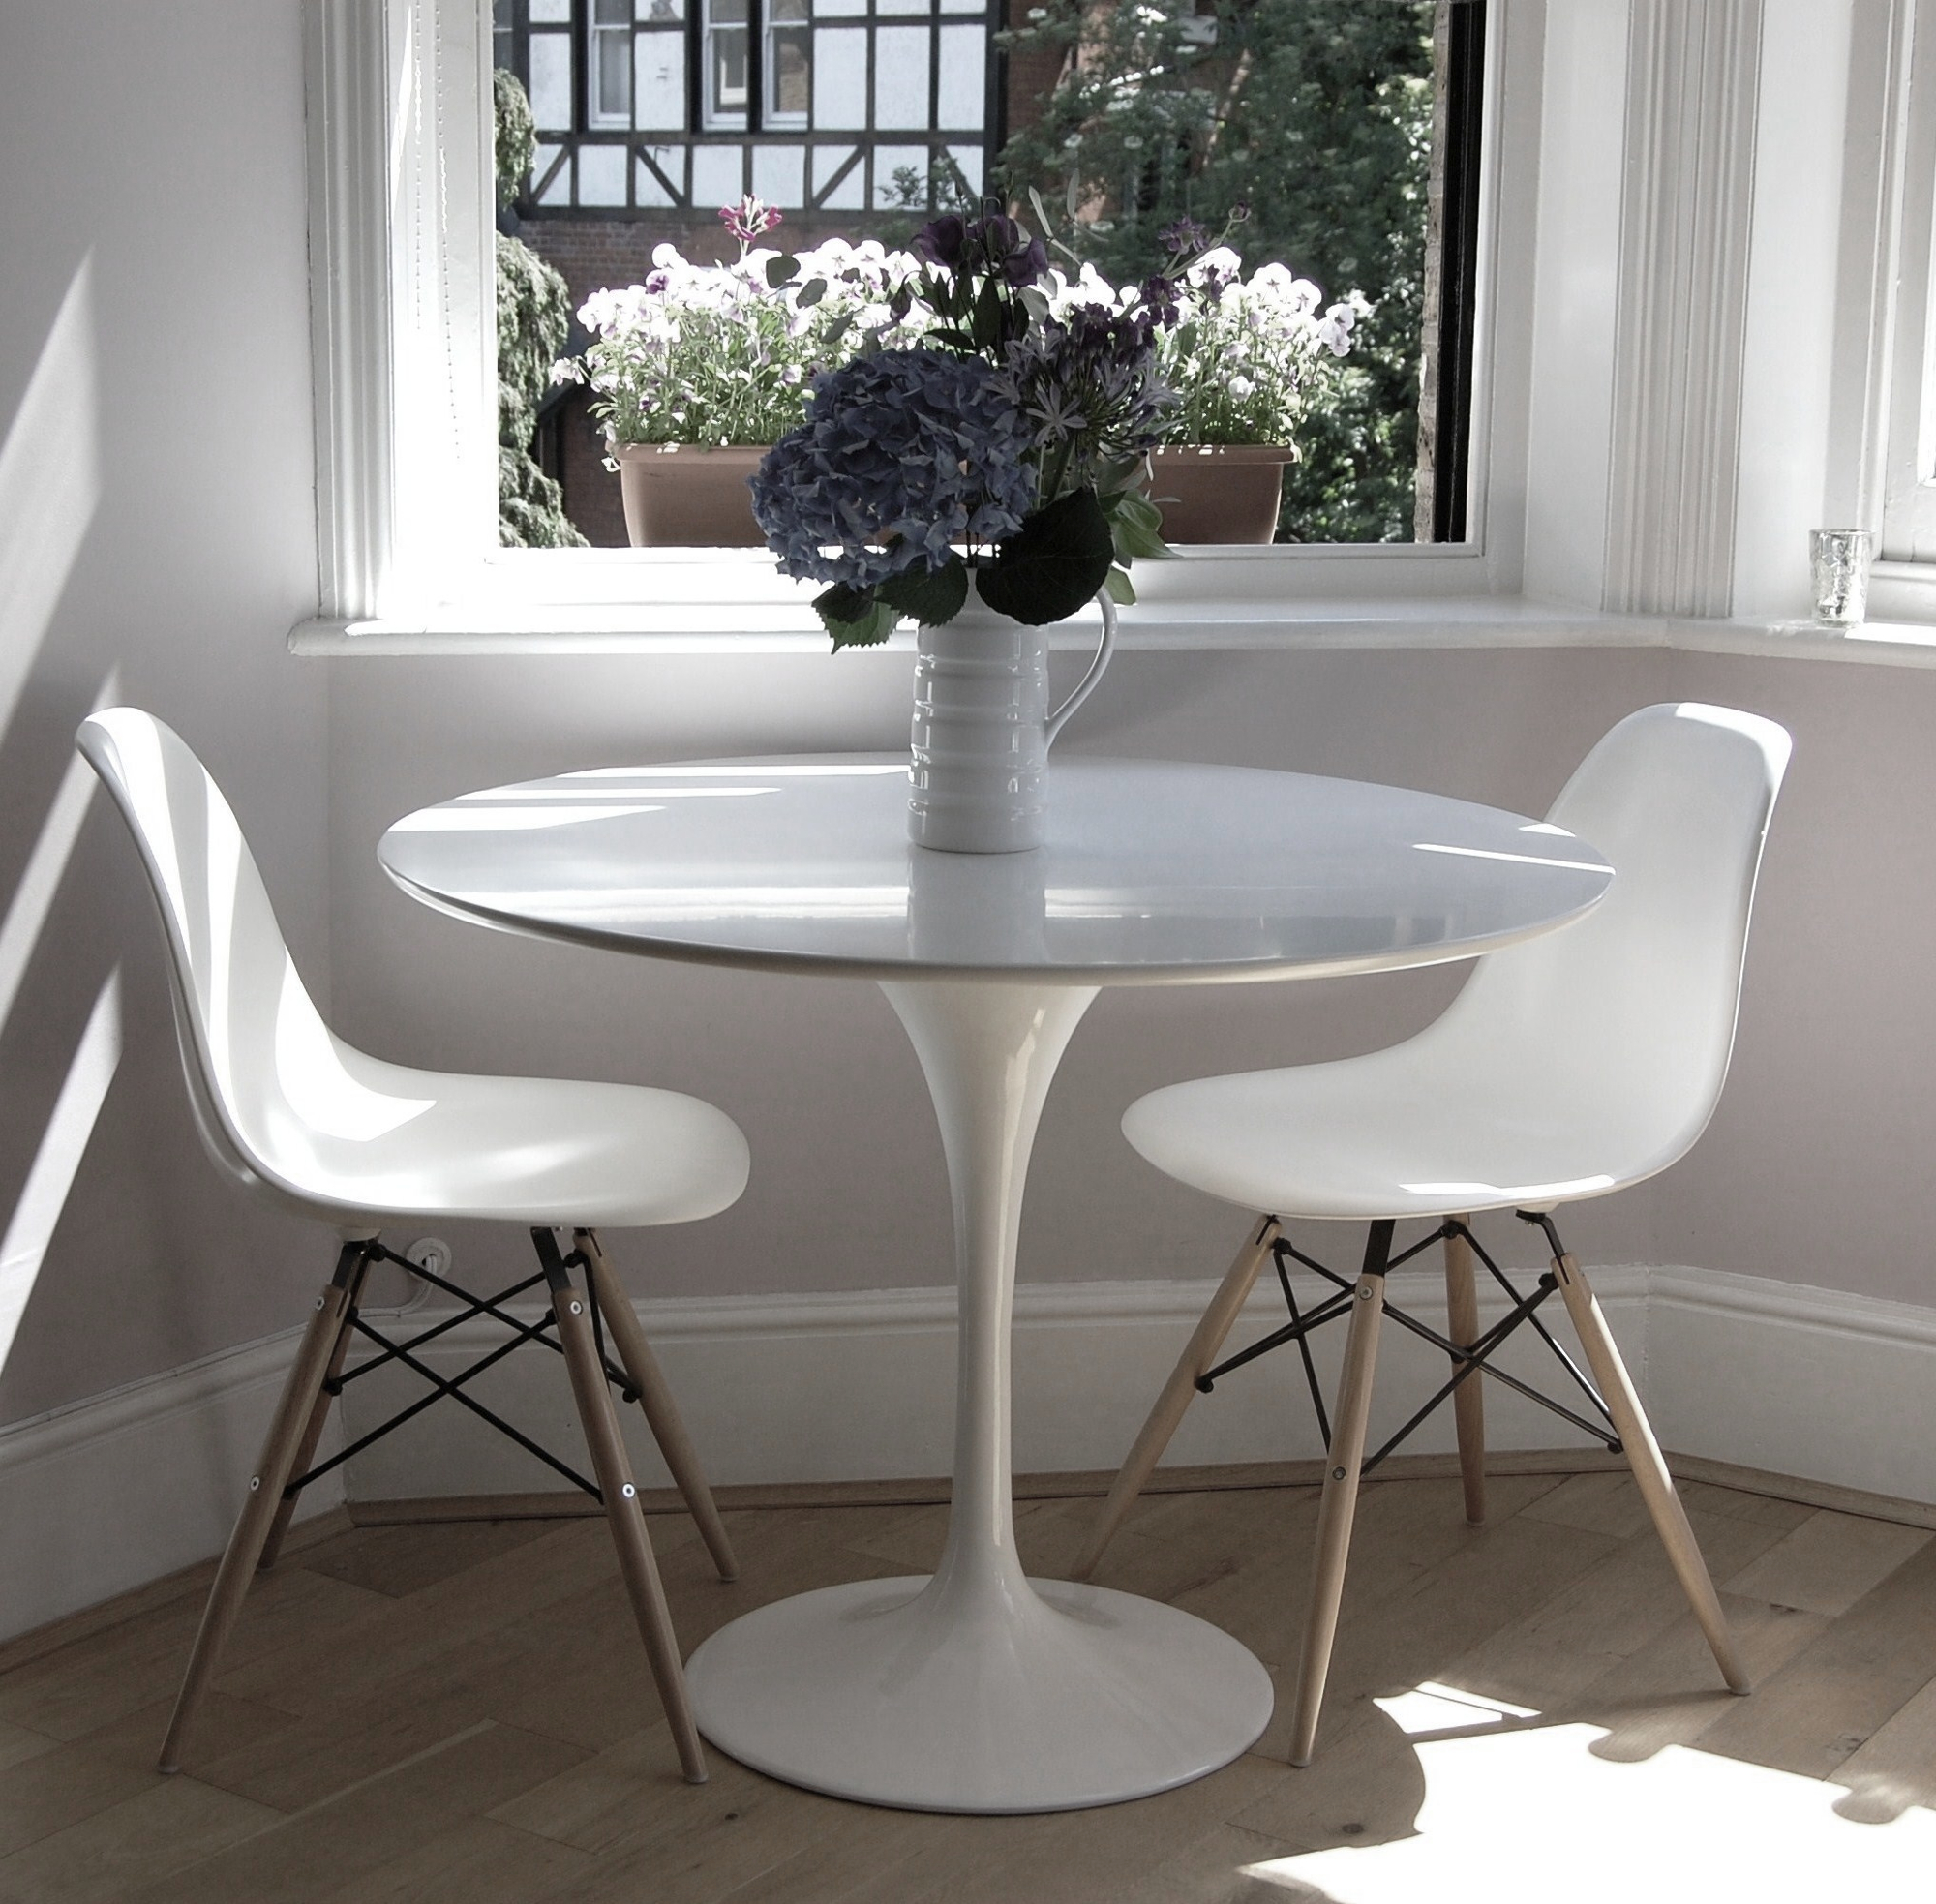 Tulip Table And Chairs Tulip Dining Table 90cm The Natural Furniture Company Ltd